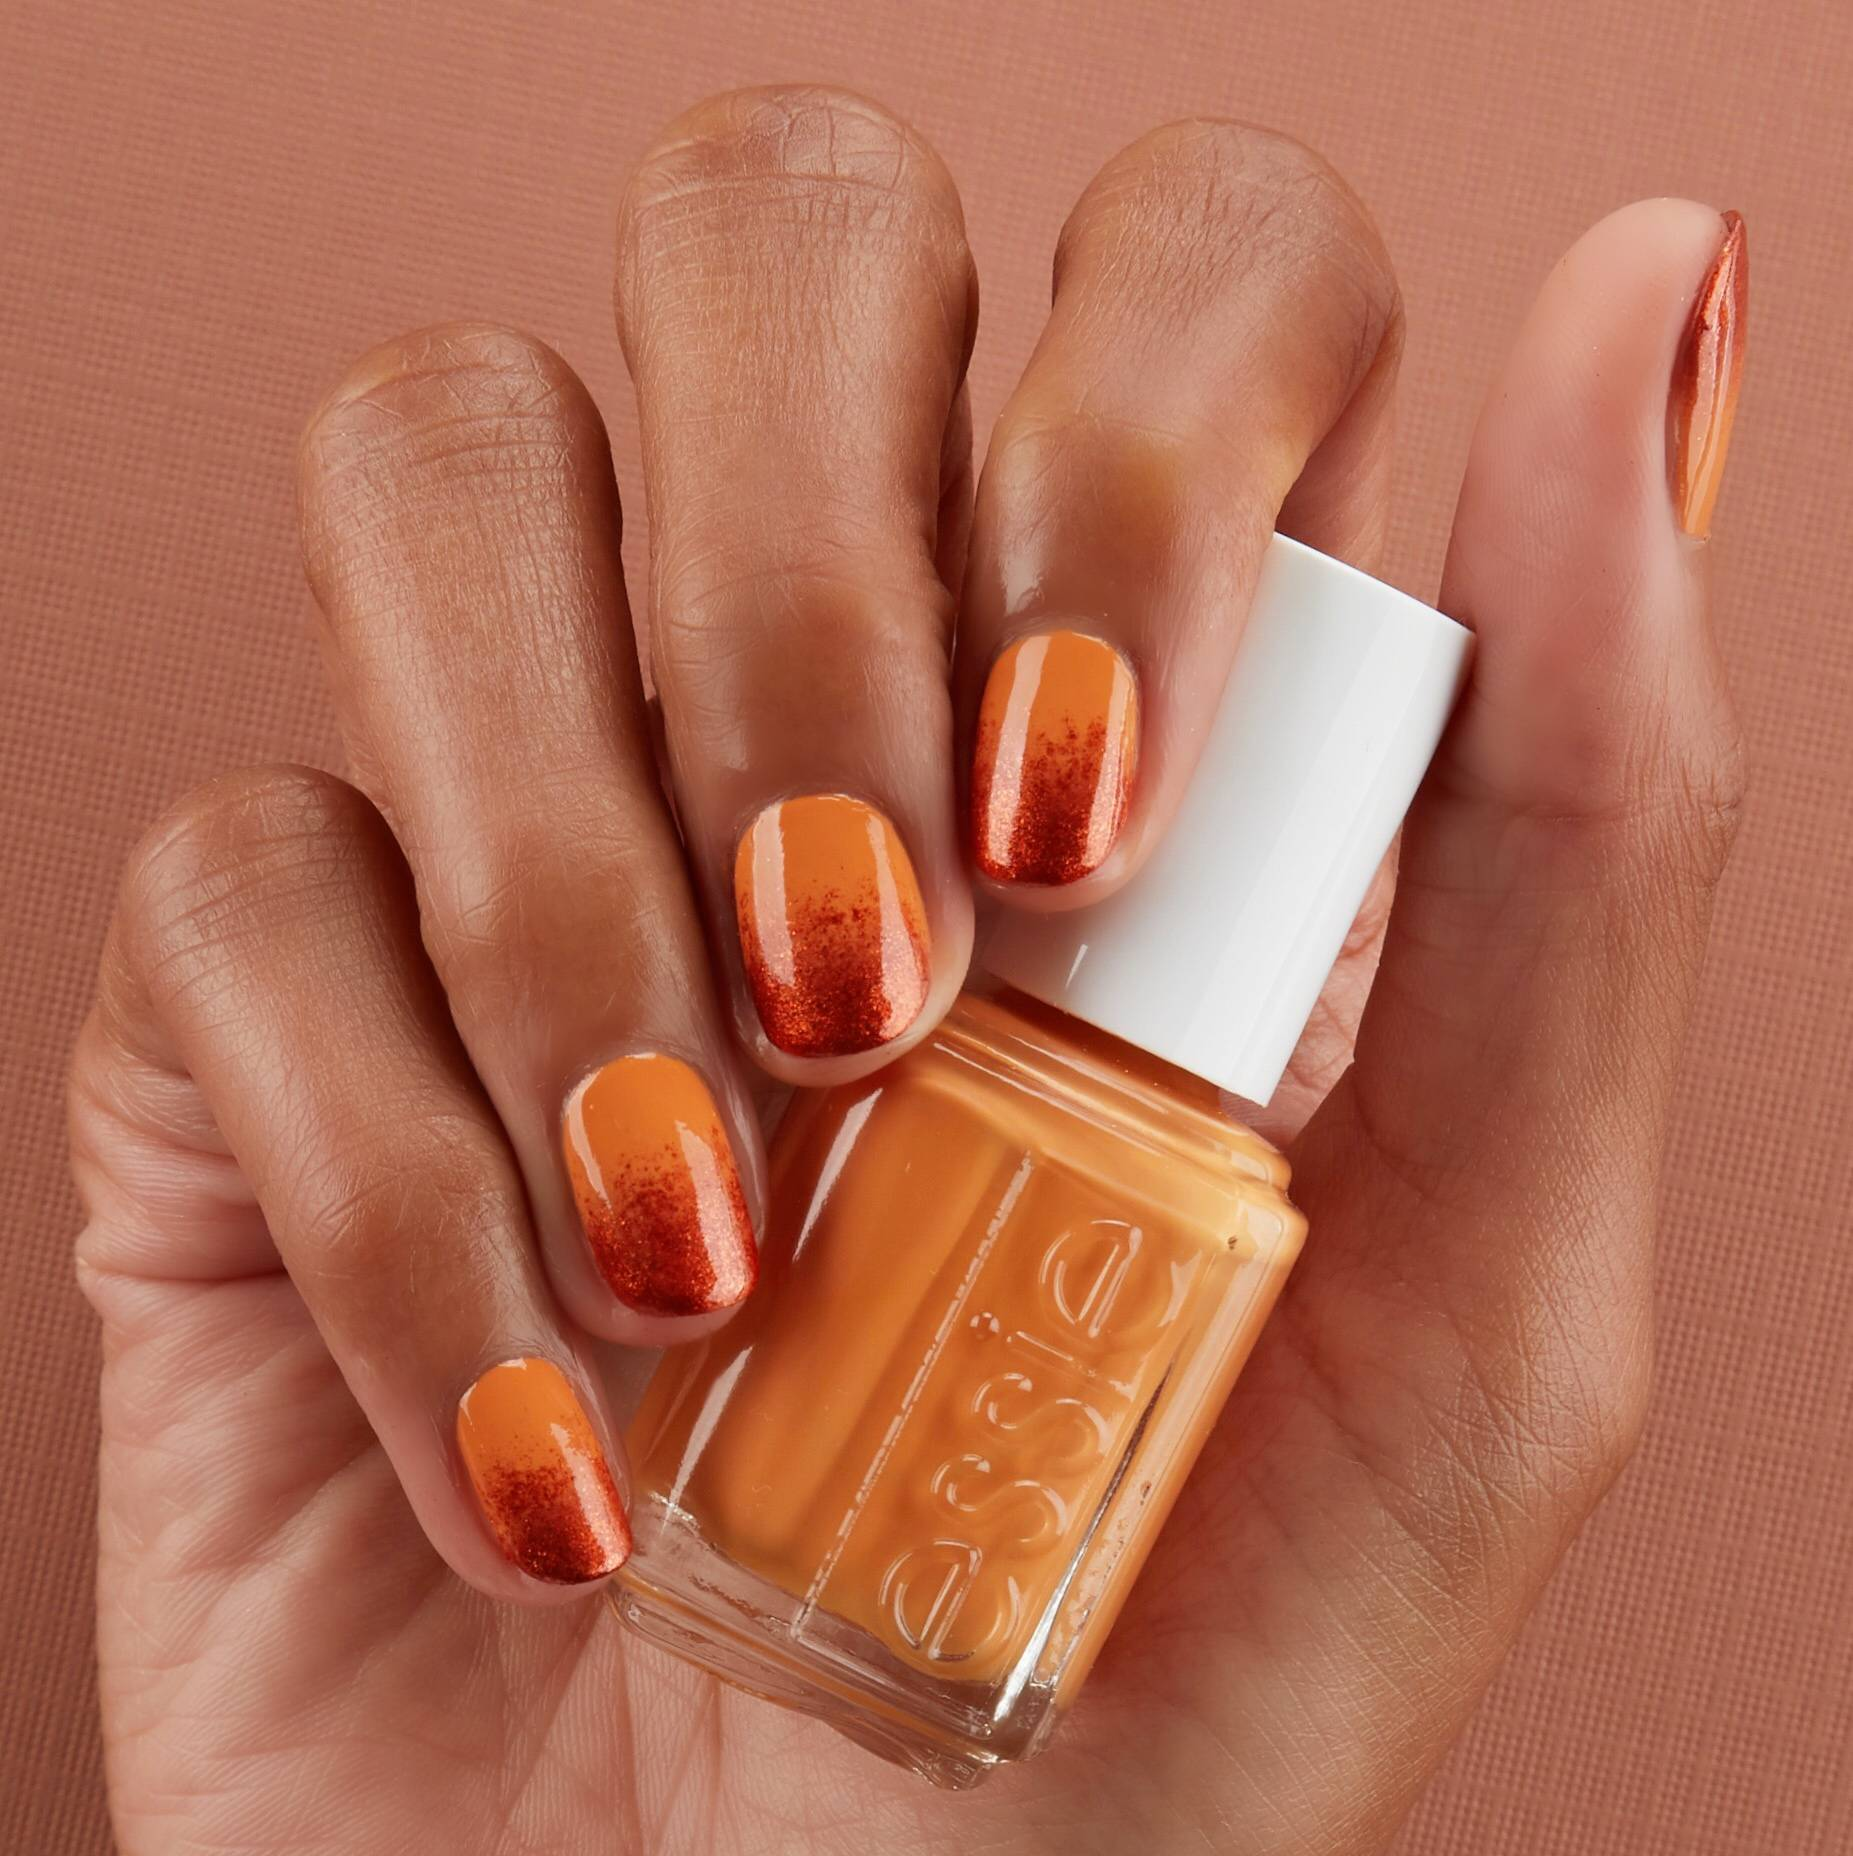 essie pumpkin spice ombre nail art - fall for nyc and say it ain't soho